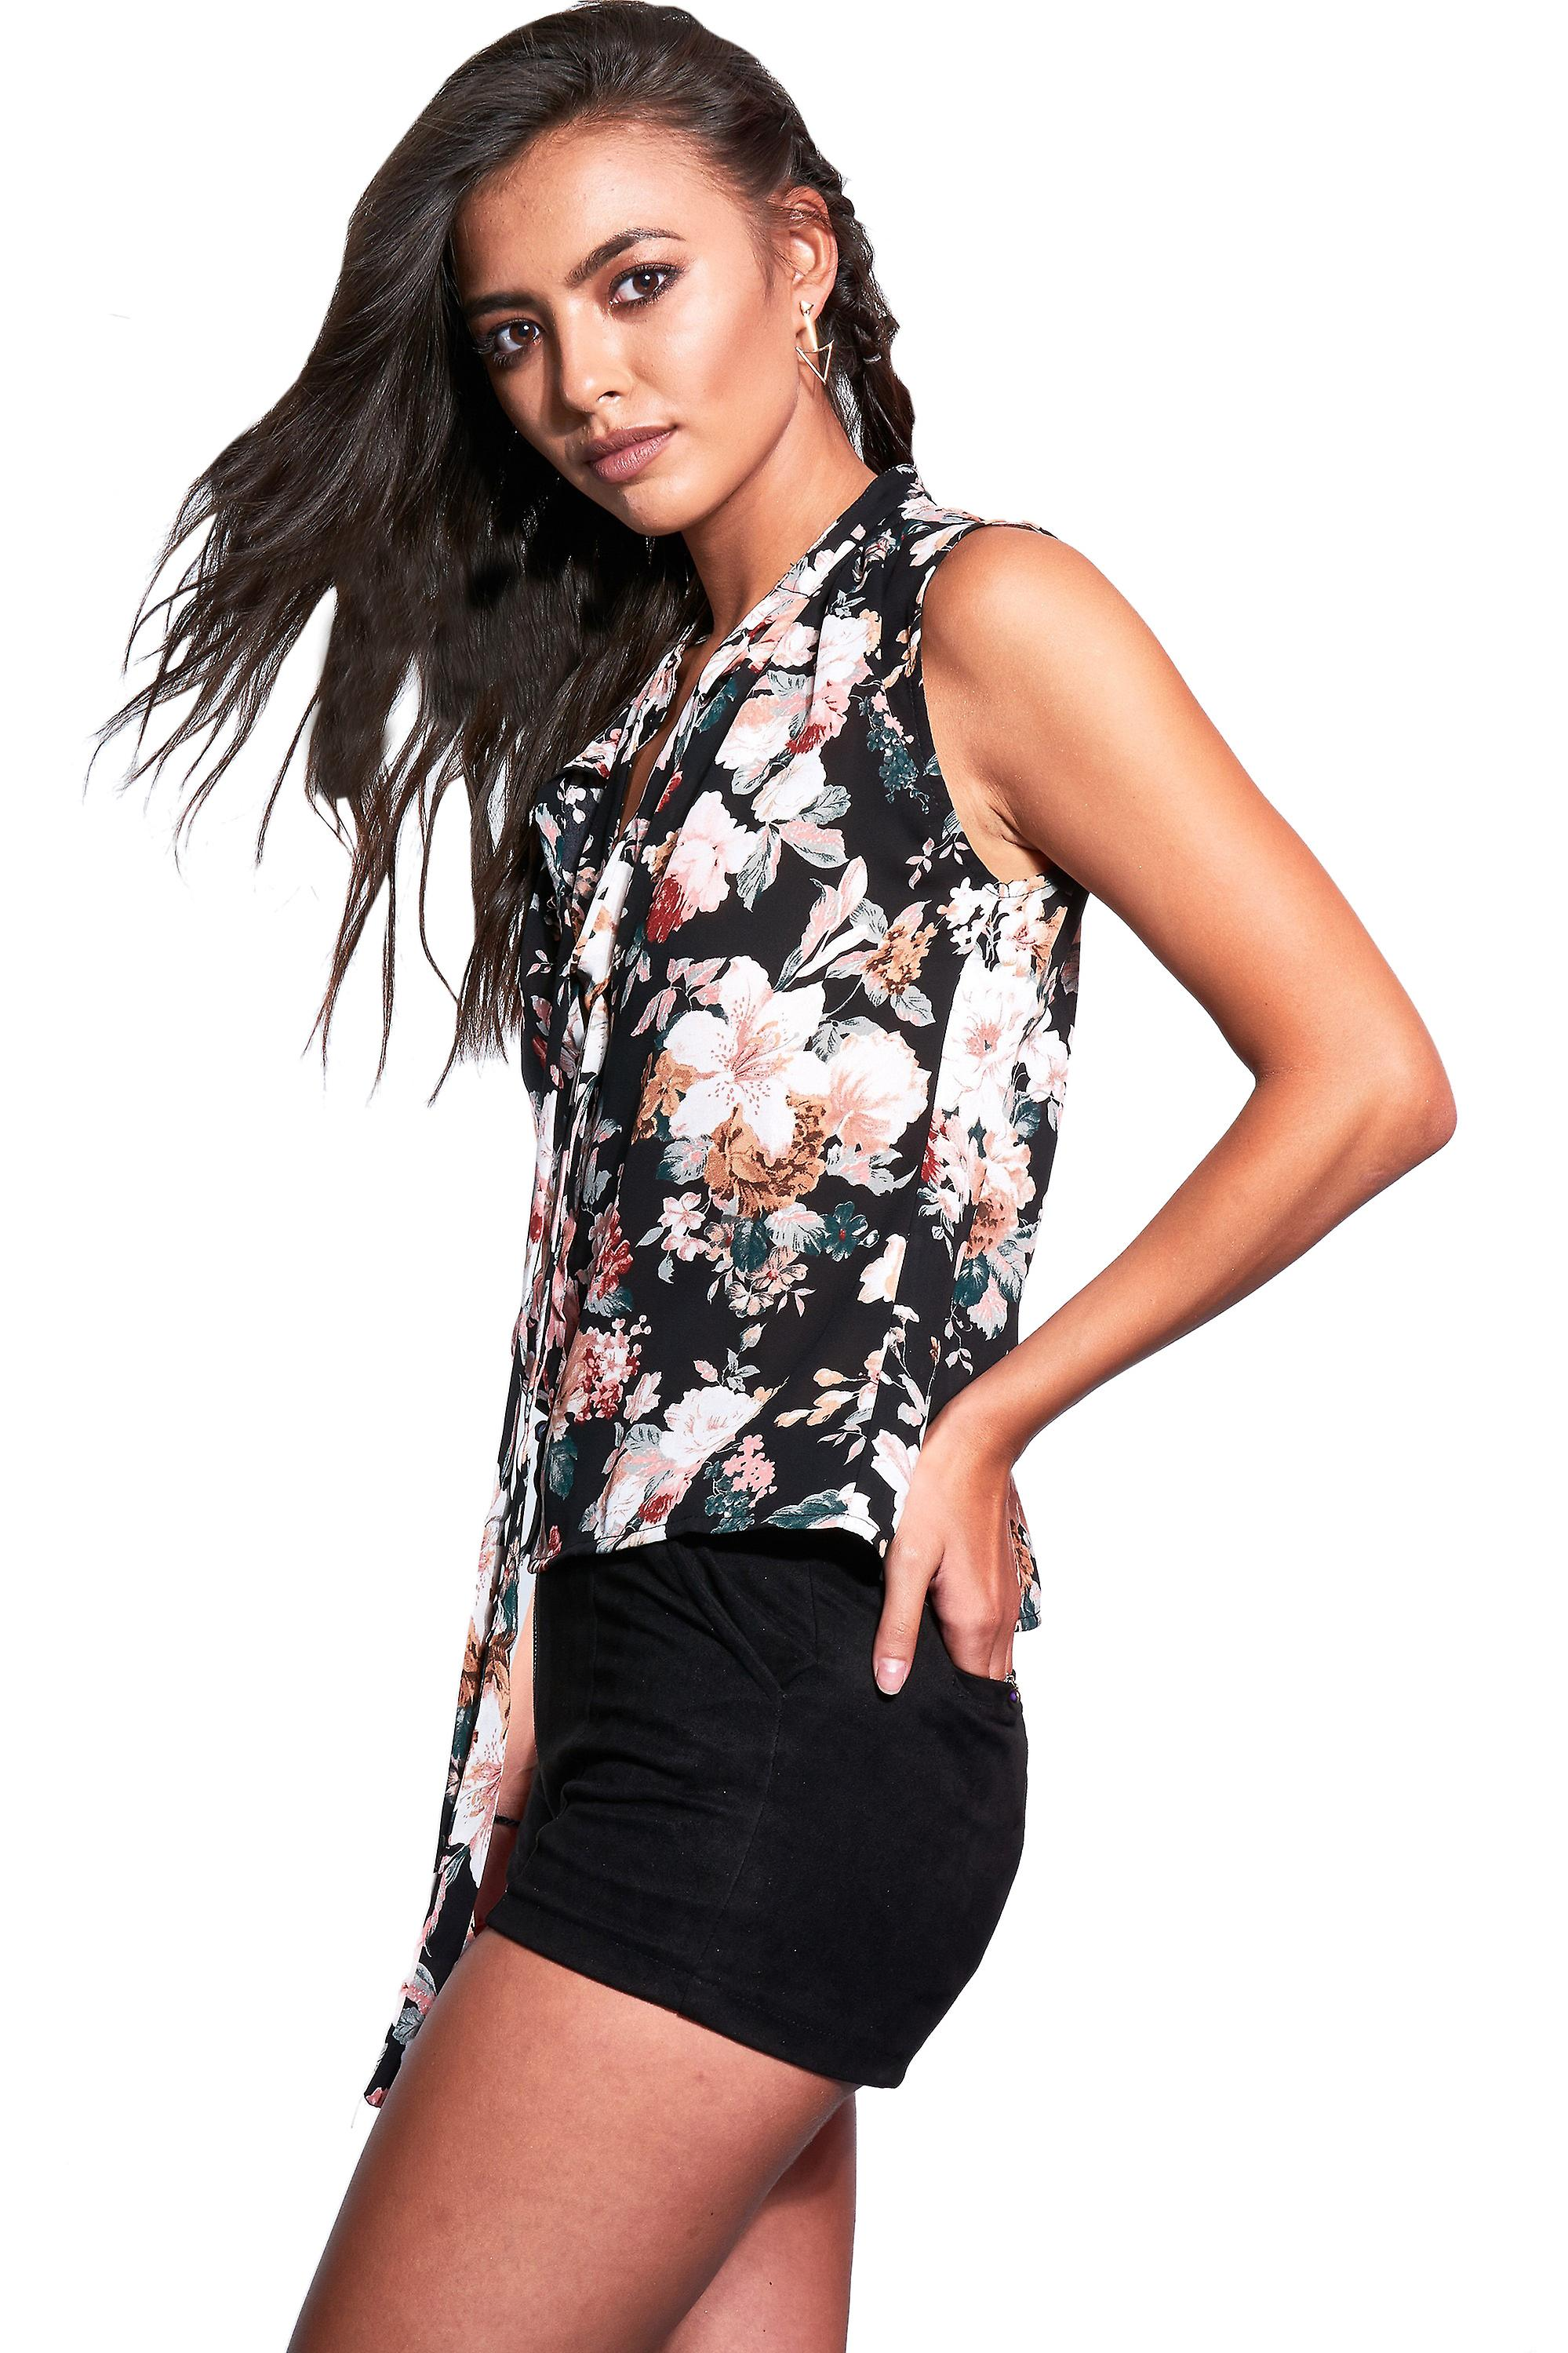 Style London Black Floral Sleeveless Blouse With Tie Neckline